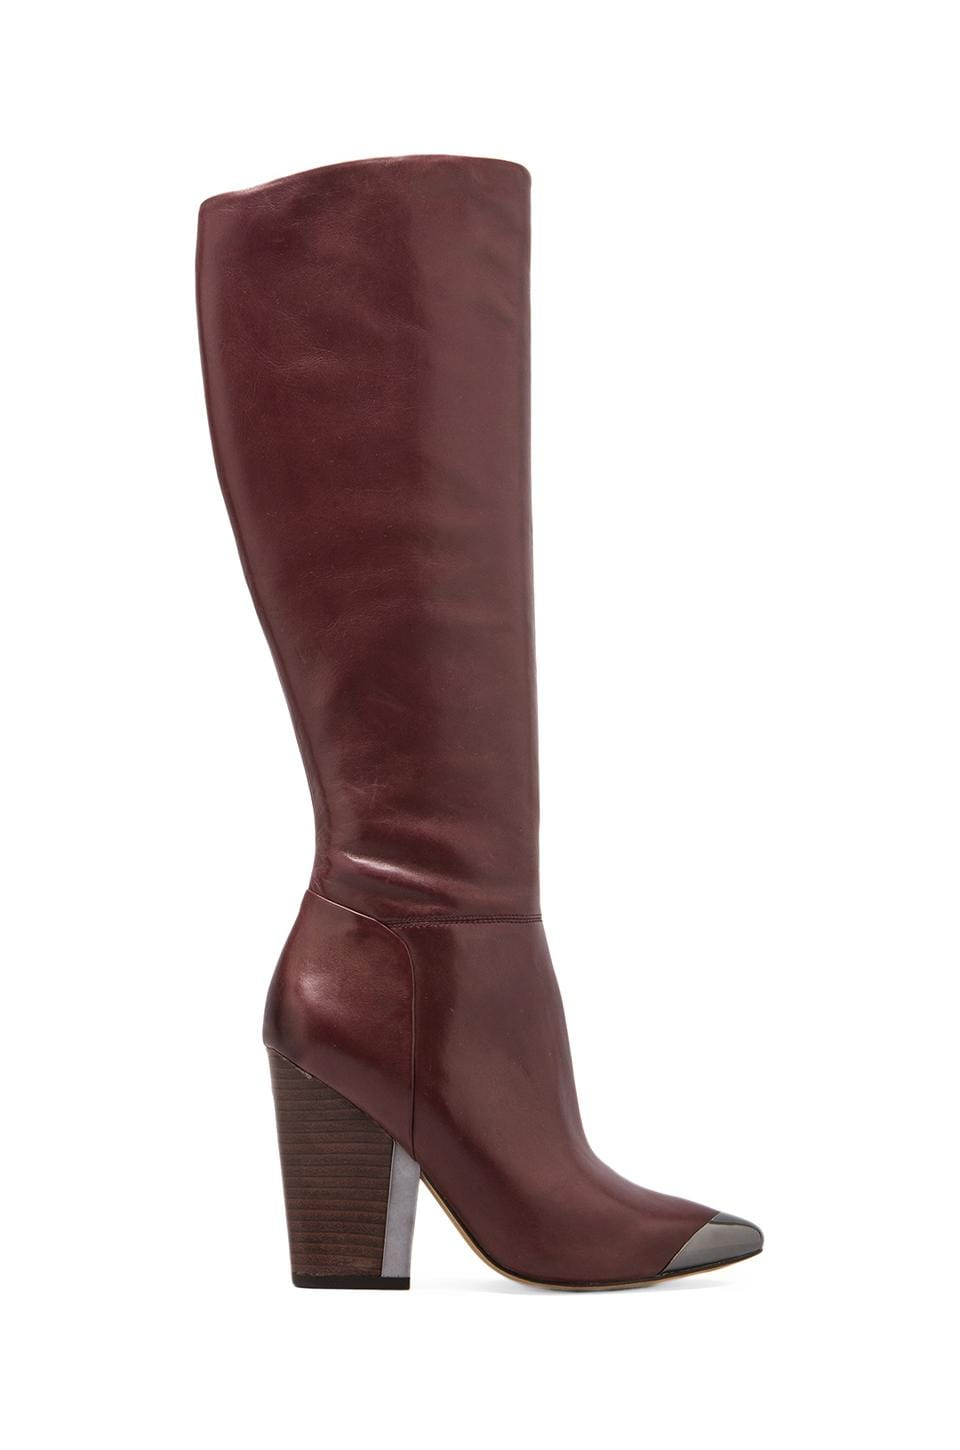 Sam Edelman Maureen Boot in British Burgundy